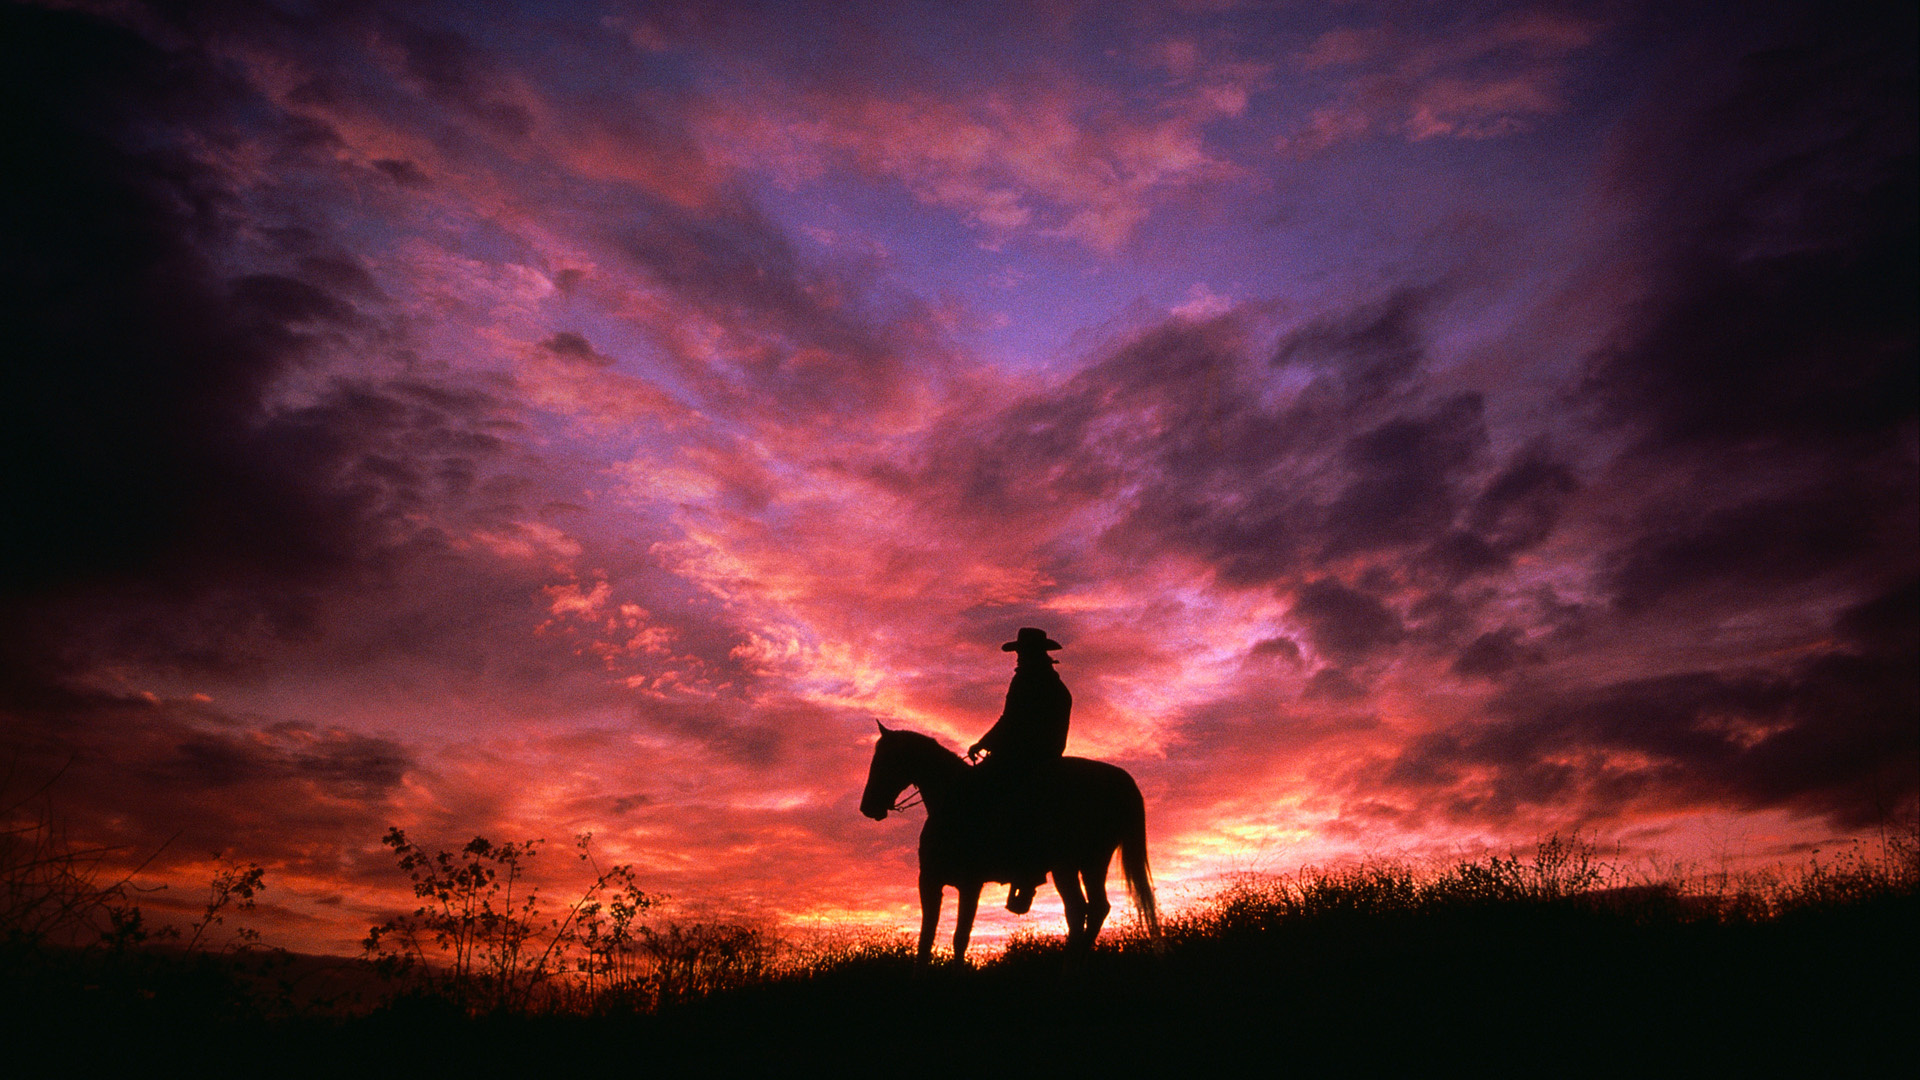 Cowboy On Horse Silhouette Sunset 1920x1080 Download Hd Wallpaper Wallpapertip